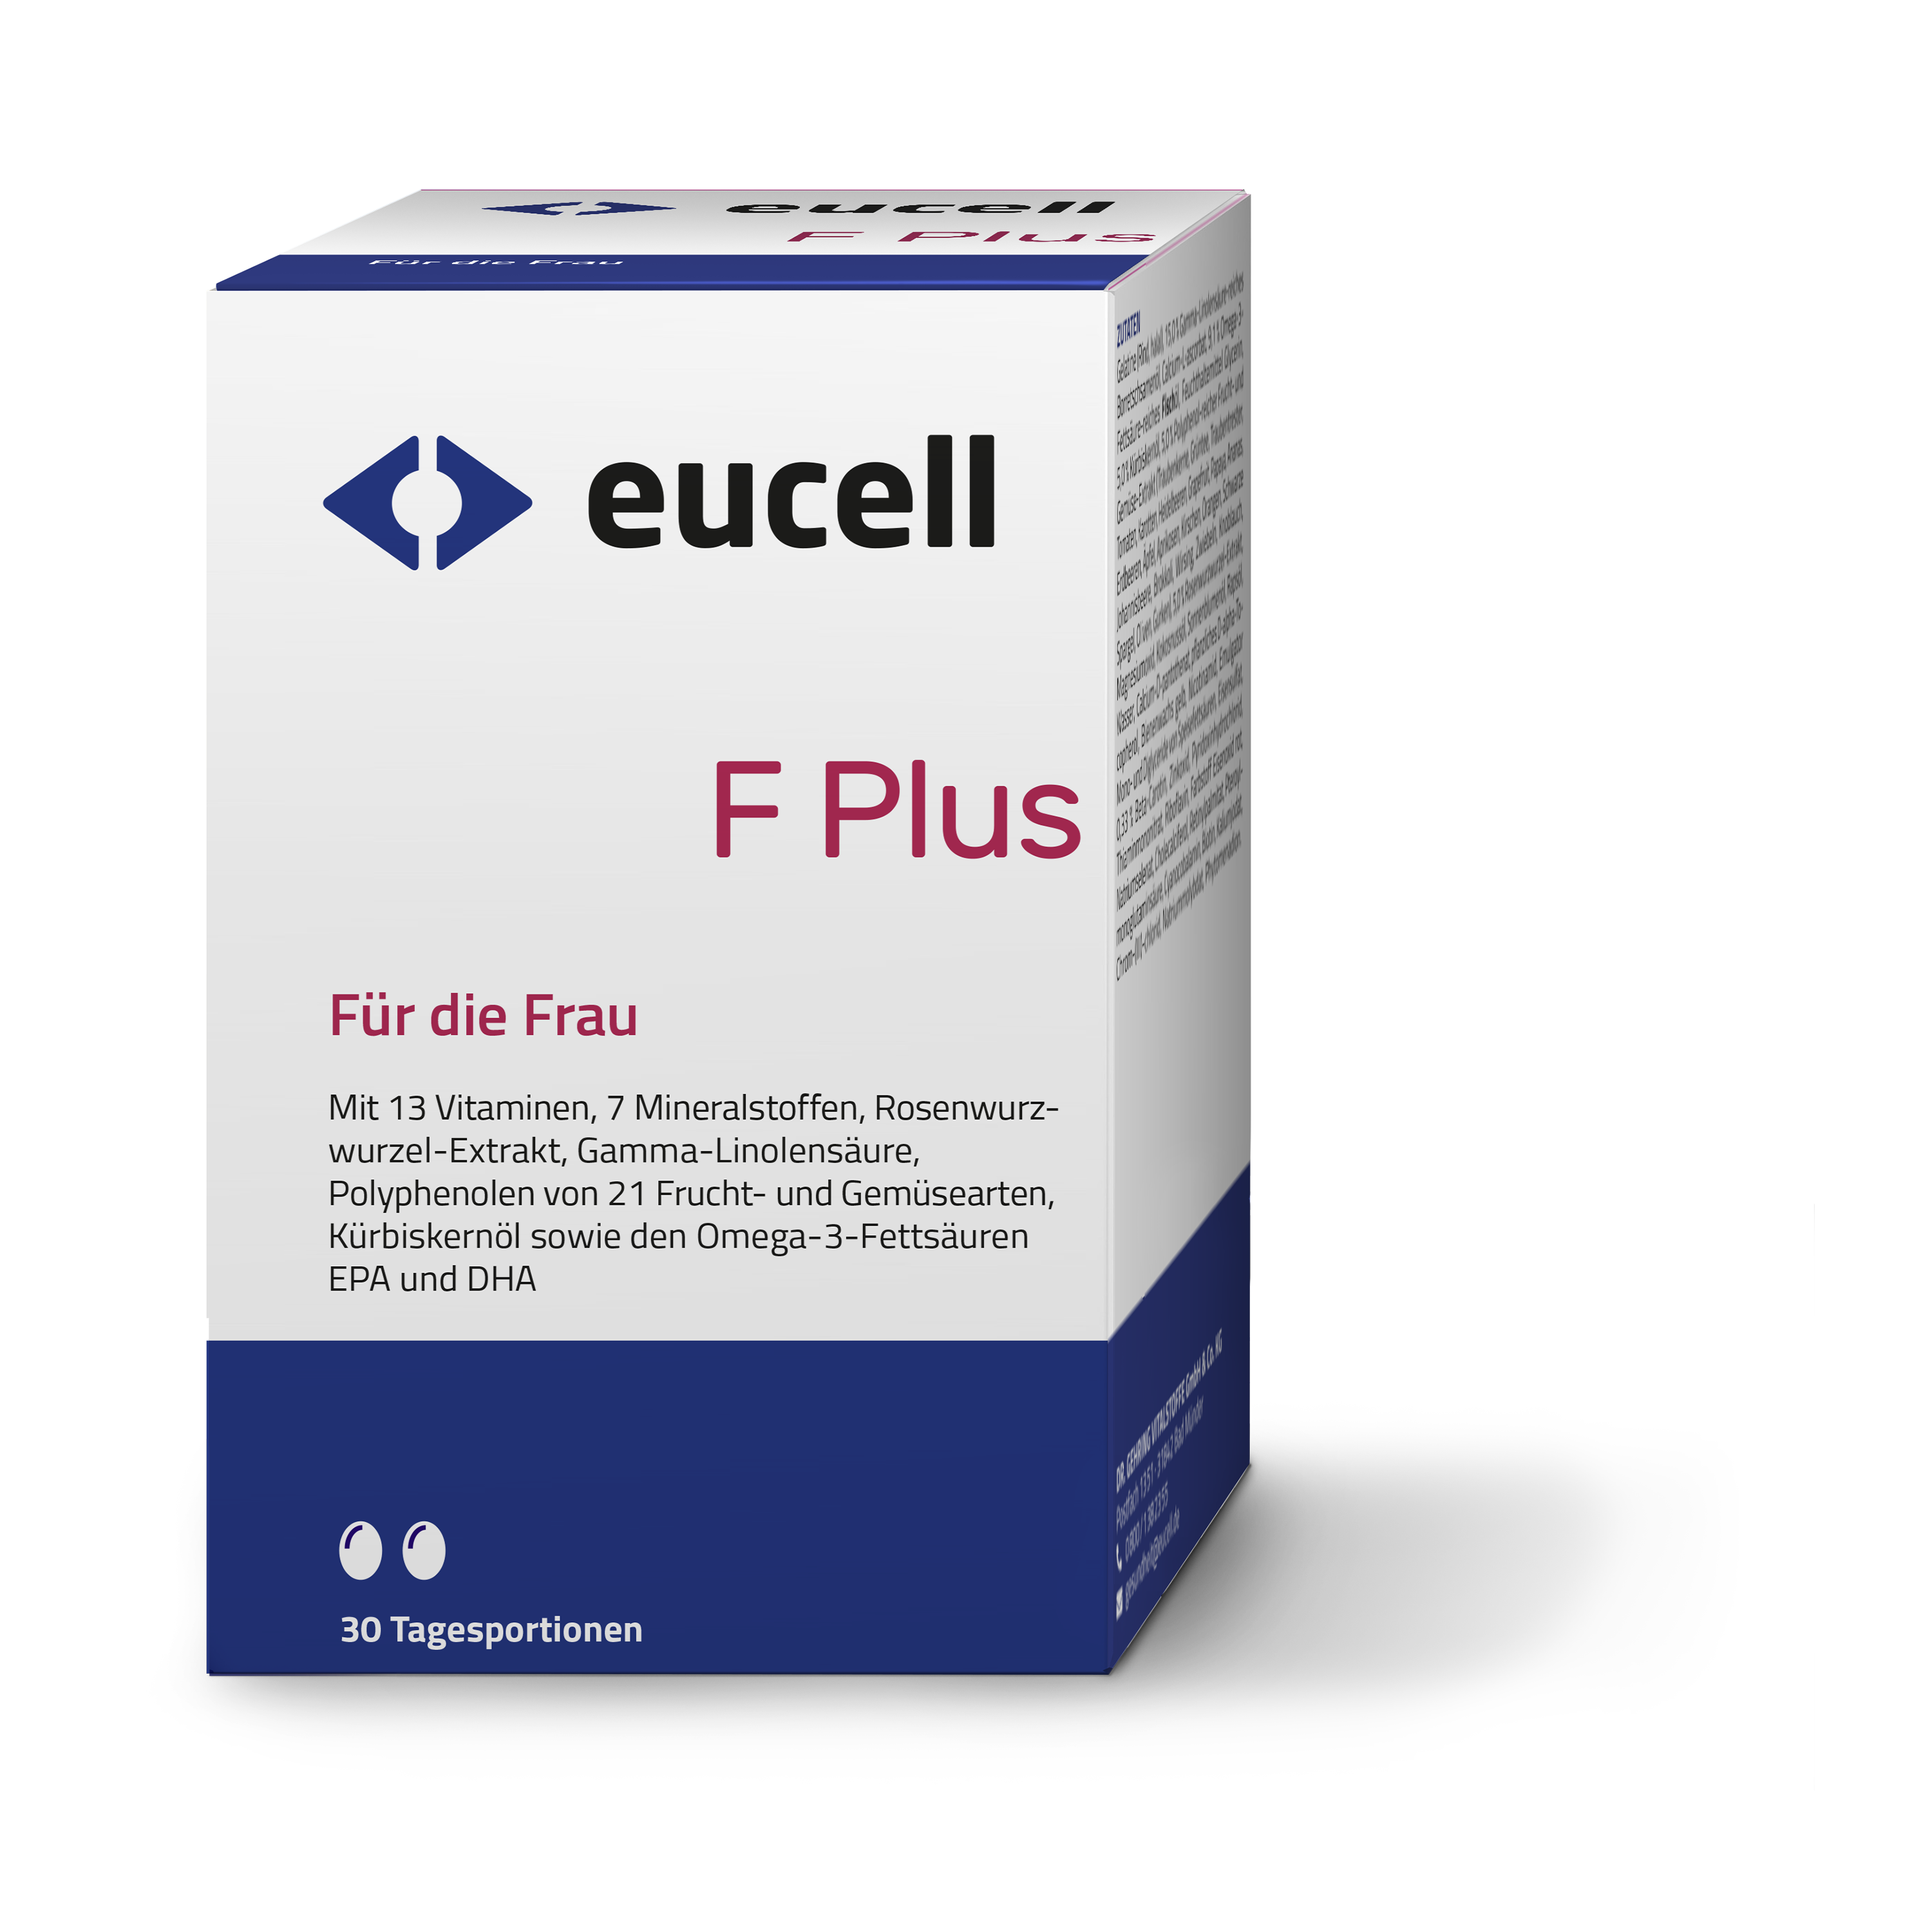 EUCELL F Plus